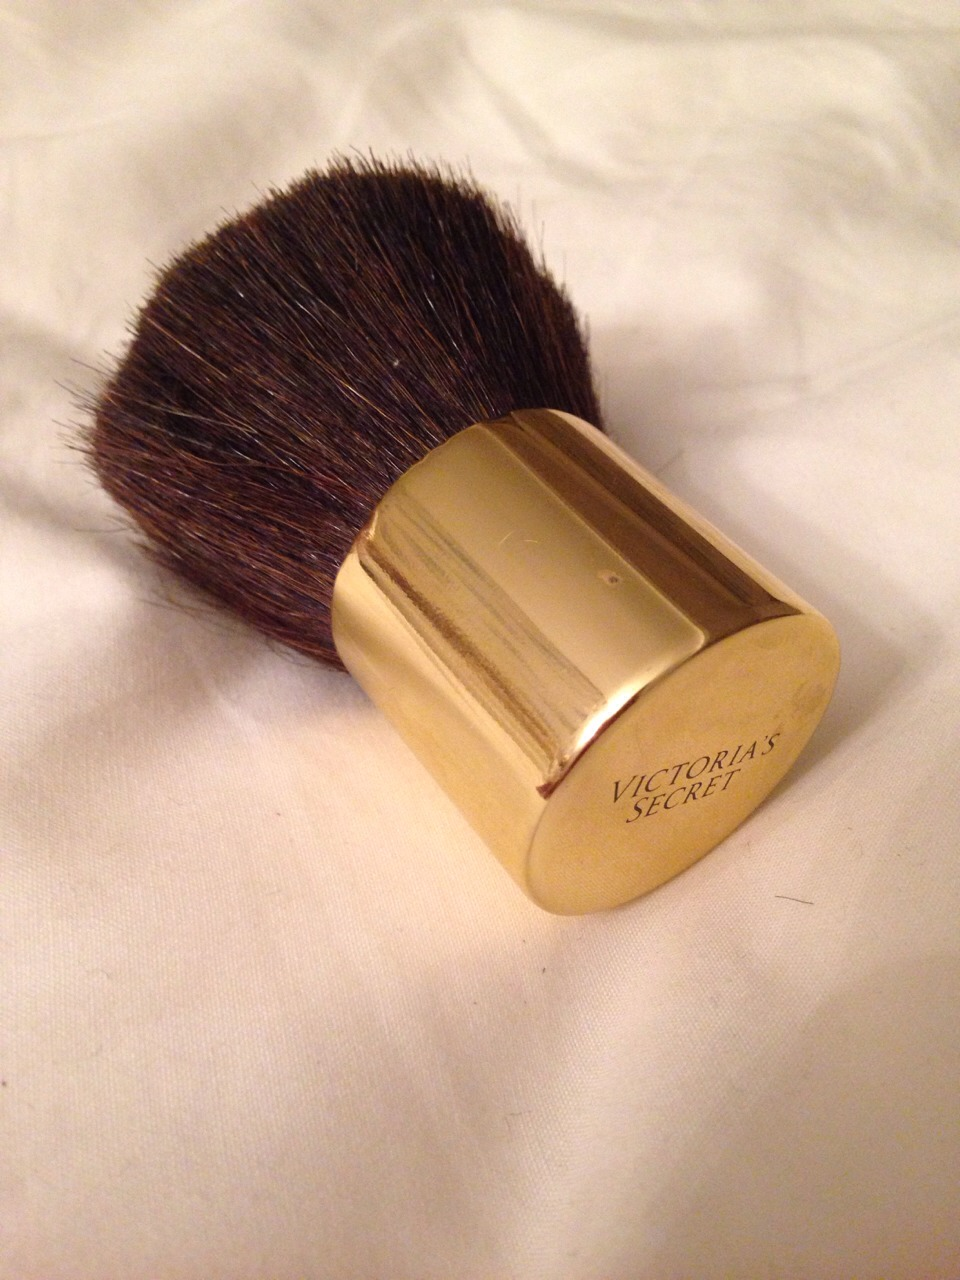 And might I add that this is EMPEROR BRUSH OF MAKEUPTOPIA